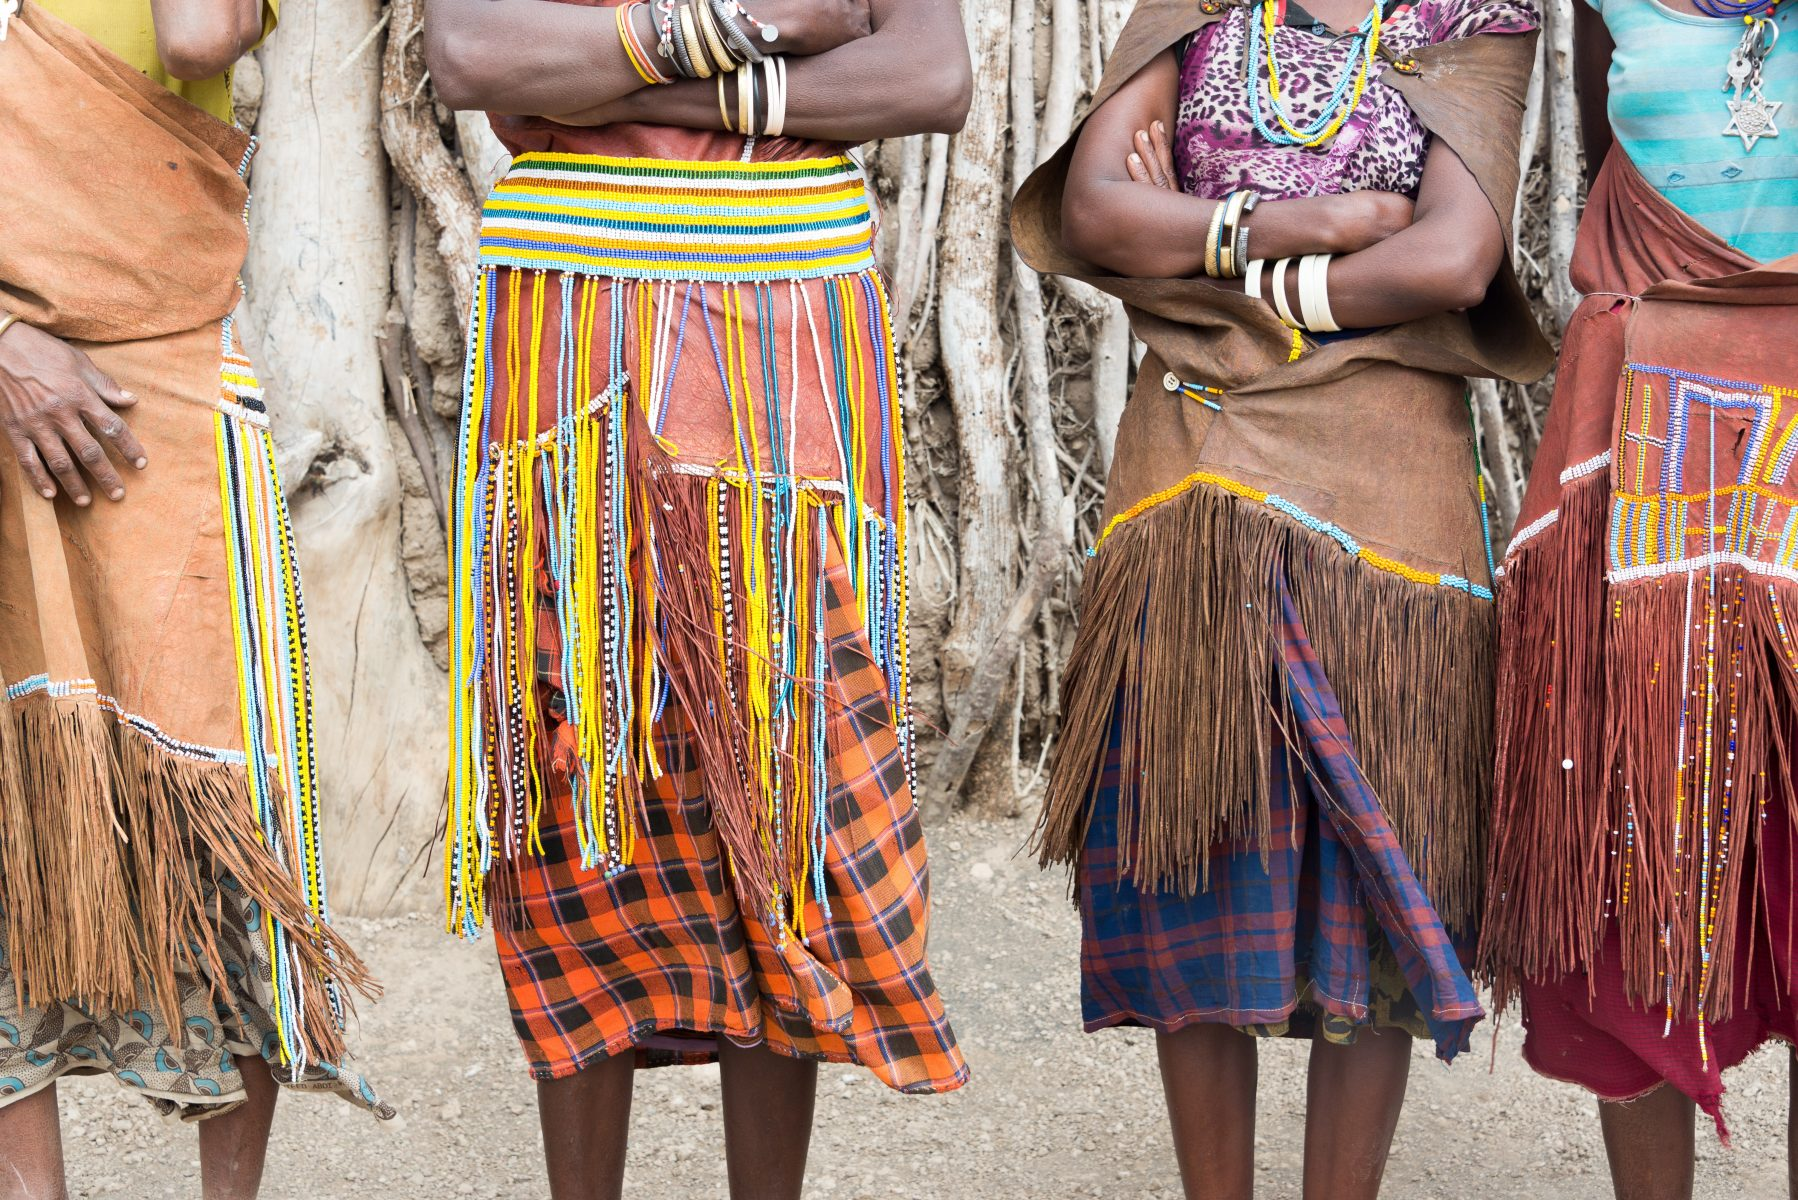 Close up view of women's colourful outfits in an African tribe